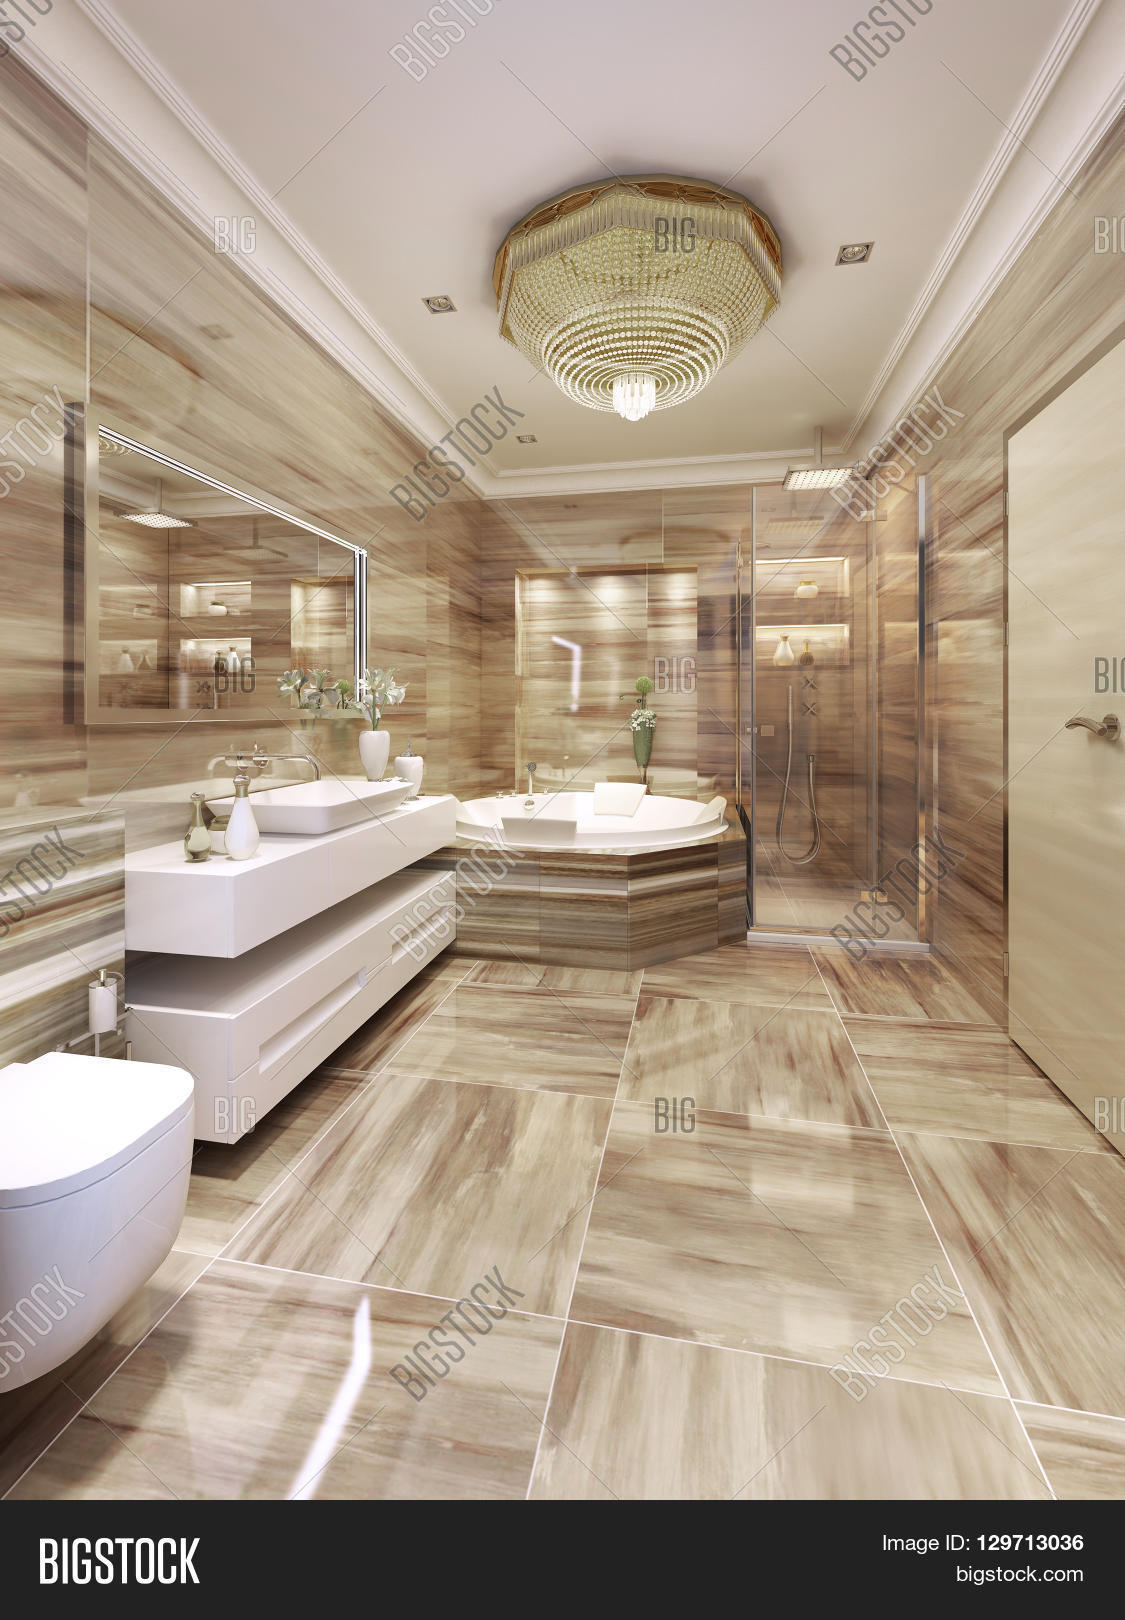 Modern Bathroom Design Image Photo Free Trial Bigstock